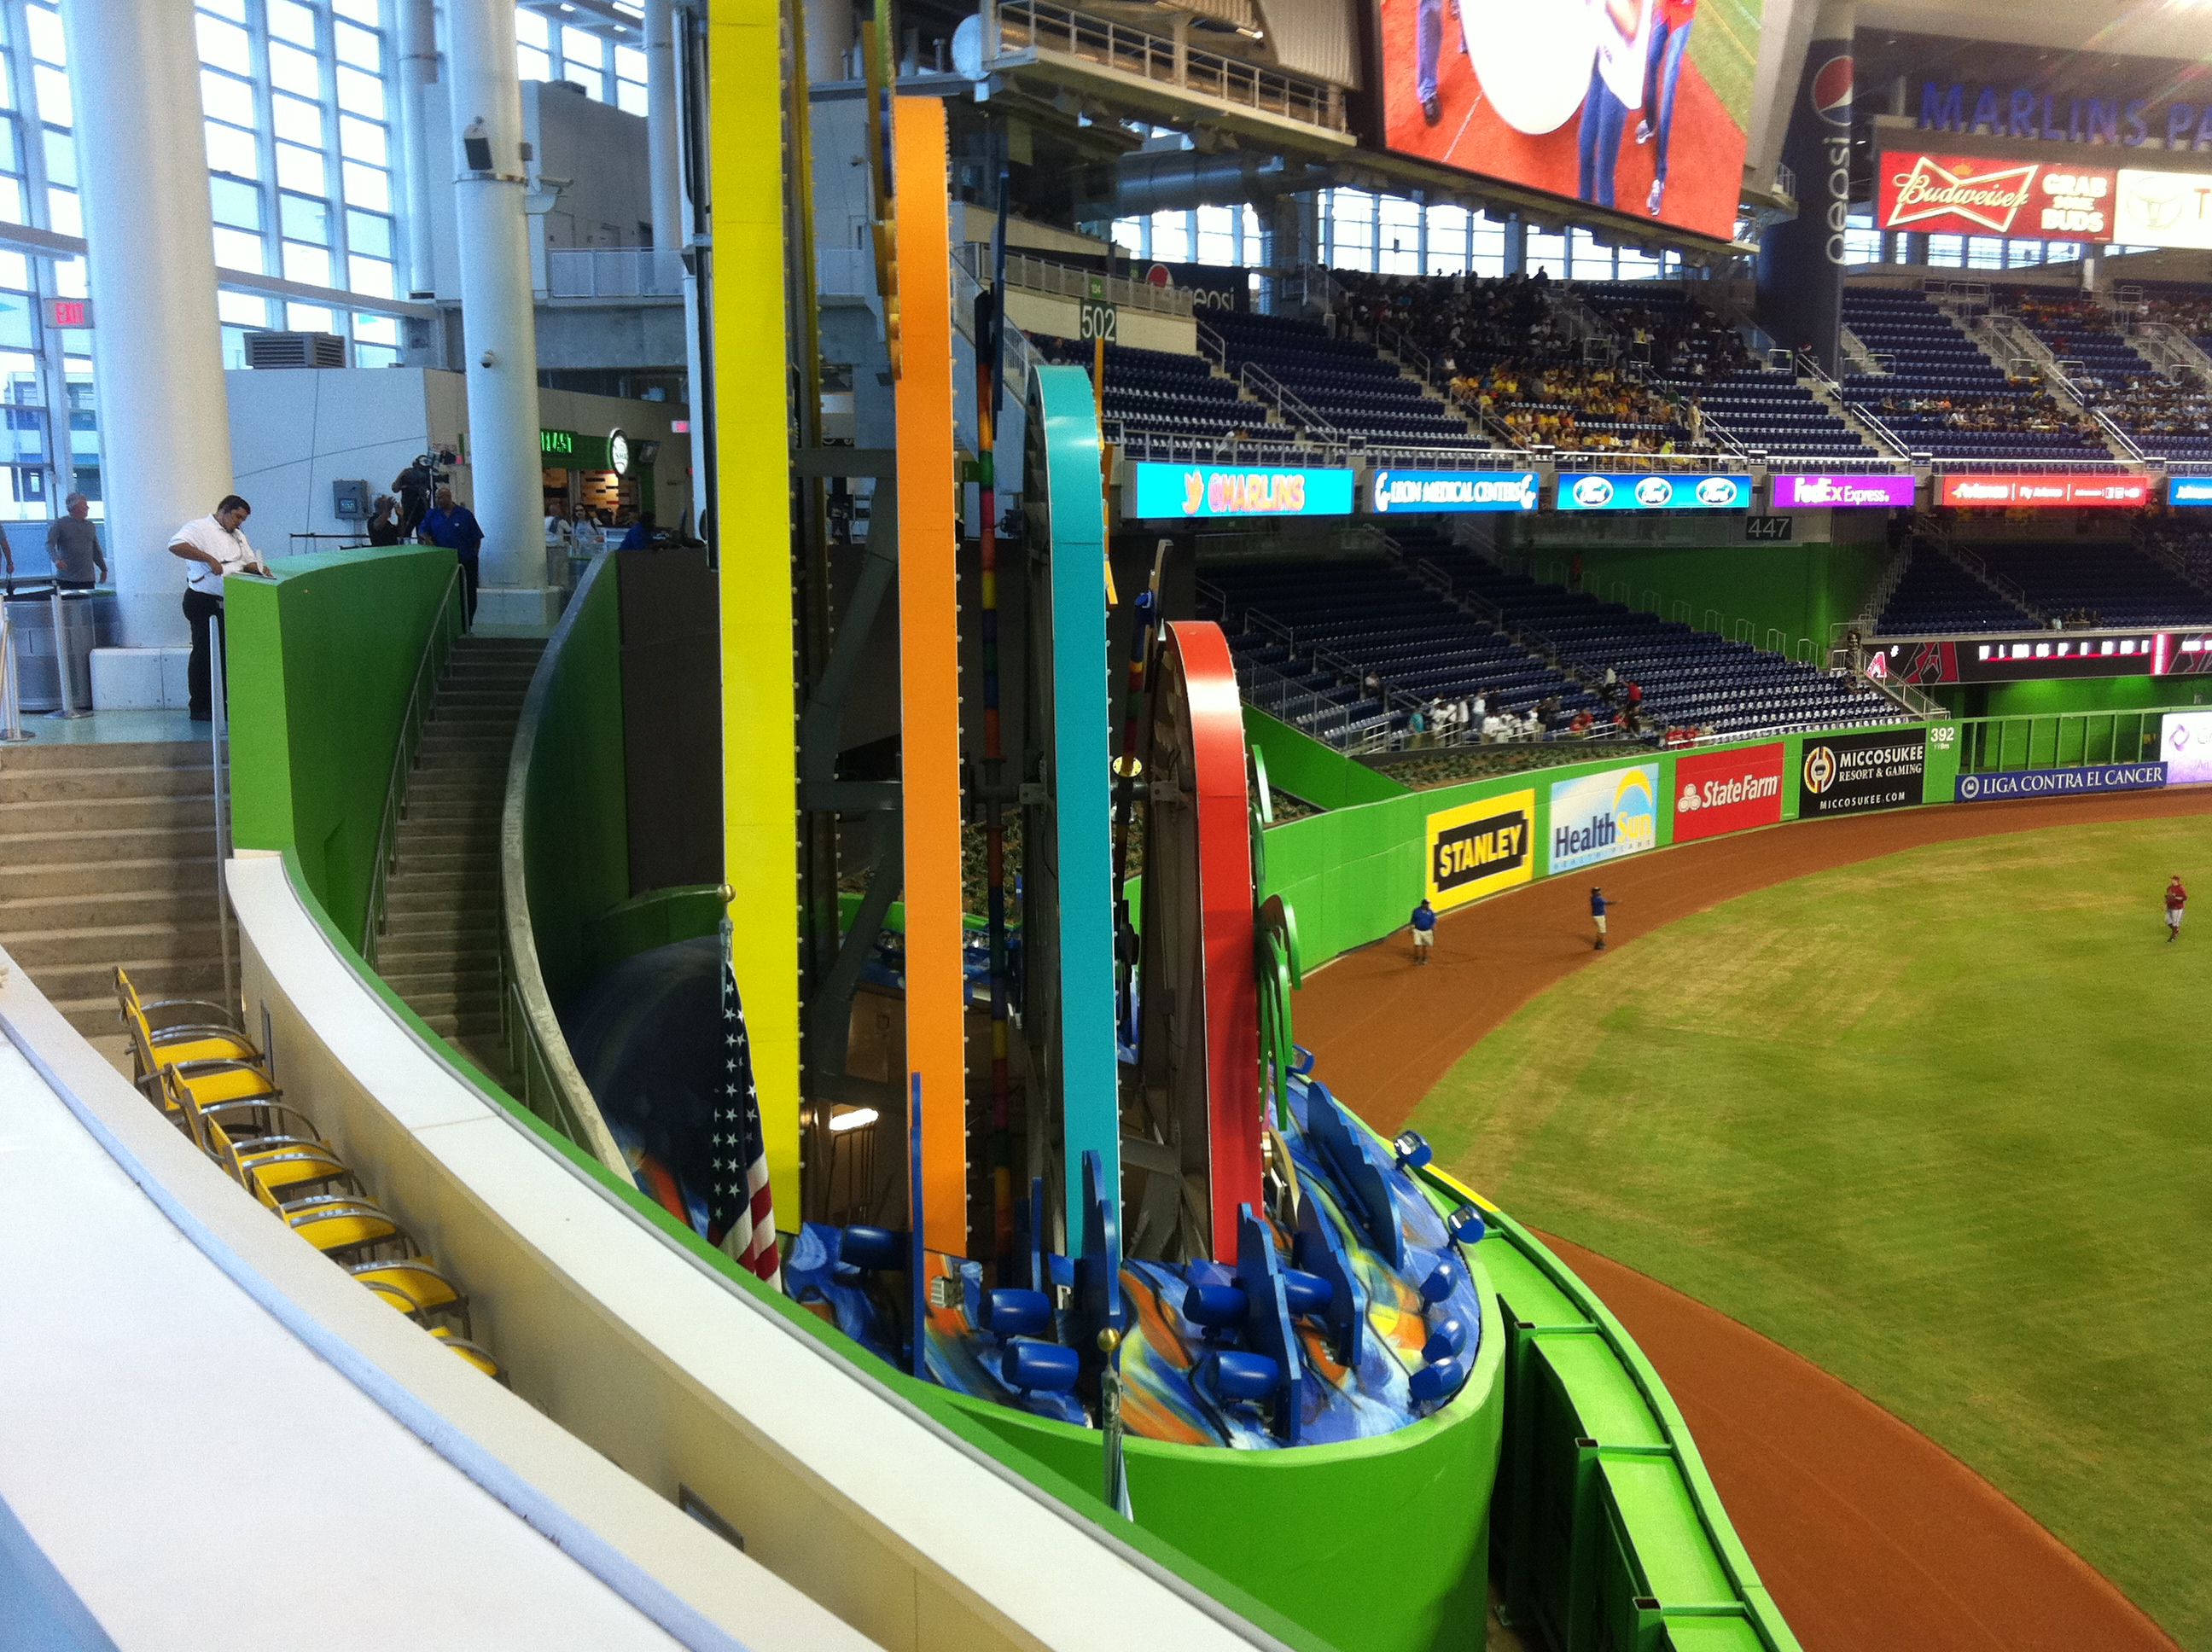 A side view of the home run sculpture.